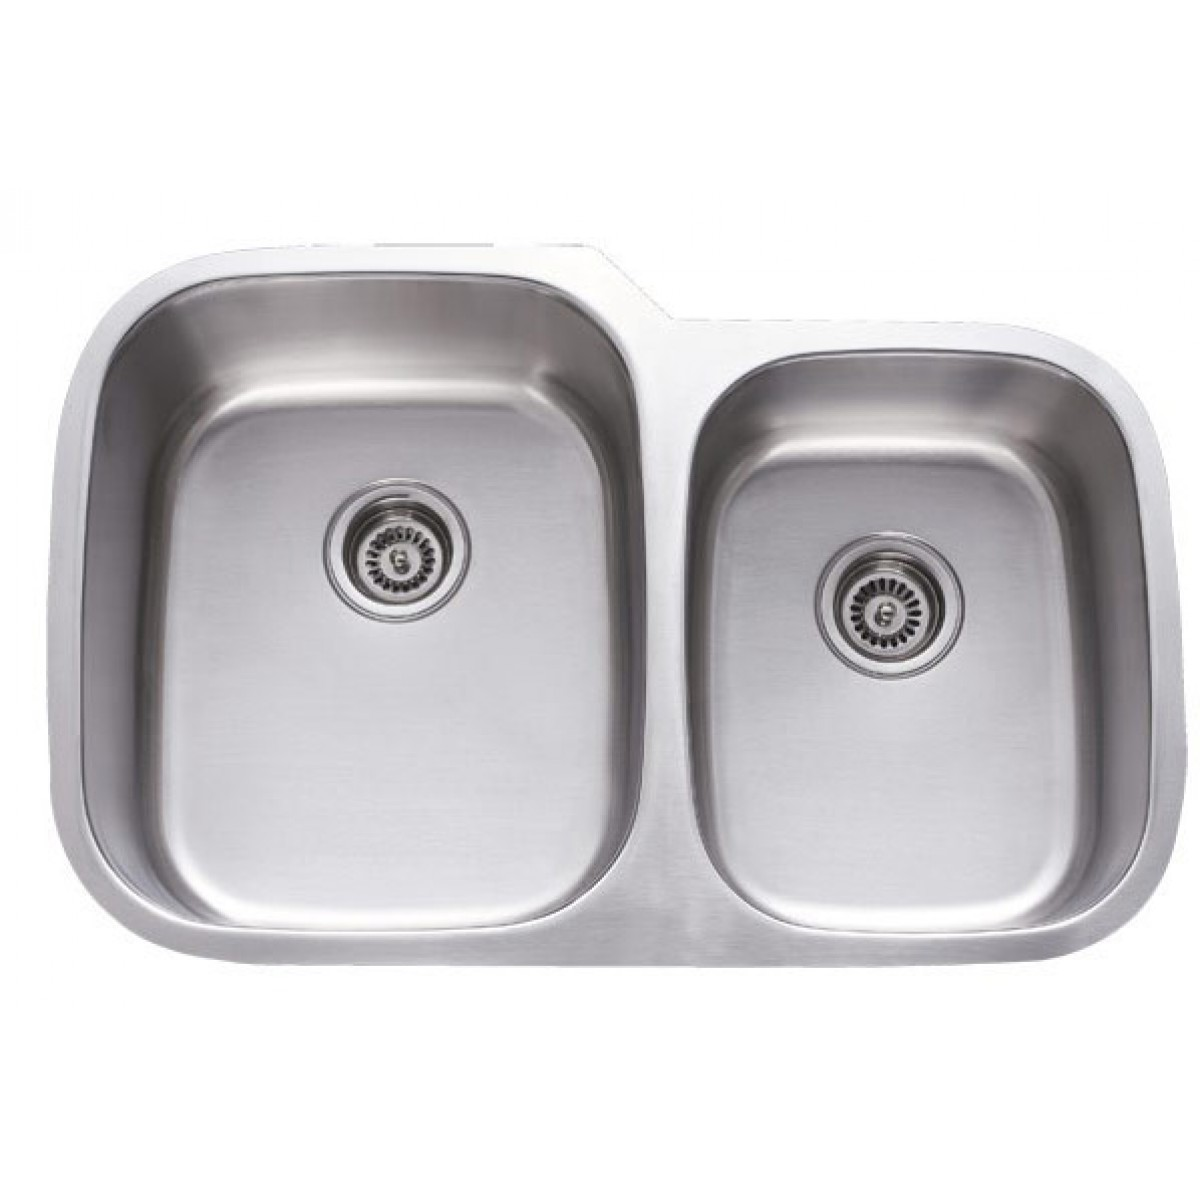 31 Inch Stainless Steel Undermount 60 40 Double Bowl Kitchen Sink 18 Gauge